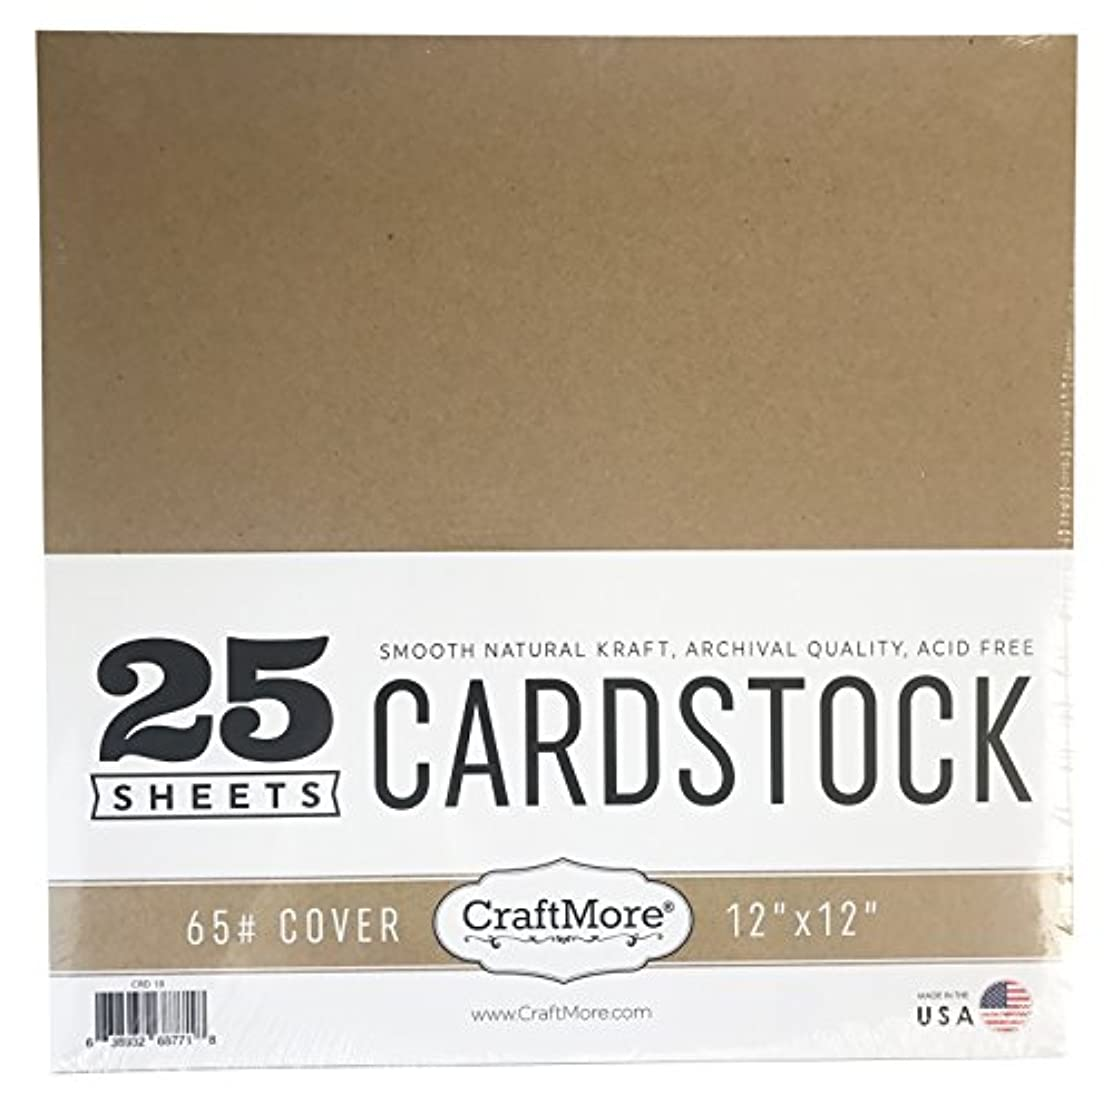 CraftMore Cardstock Paper Value Pack, 12